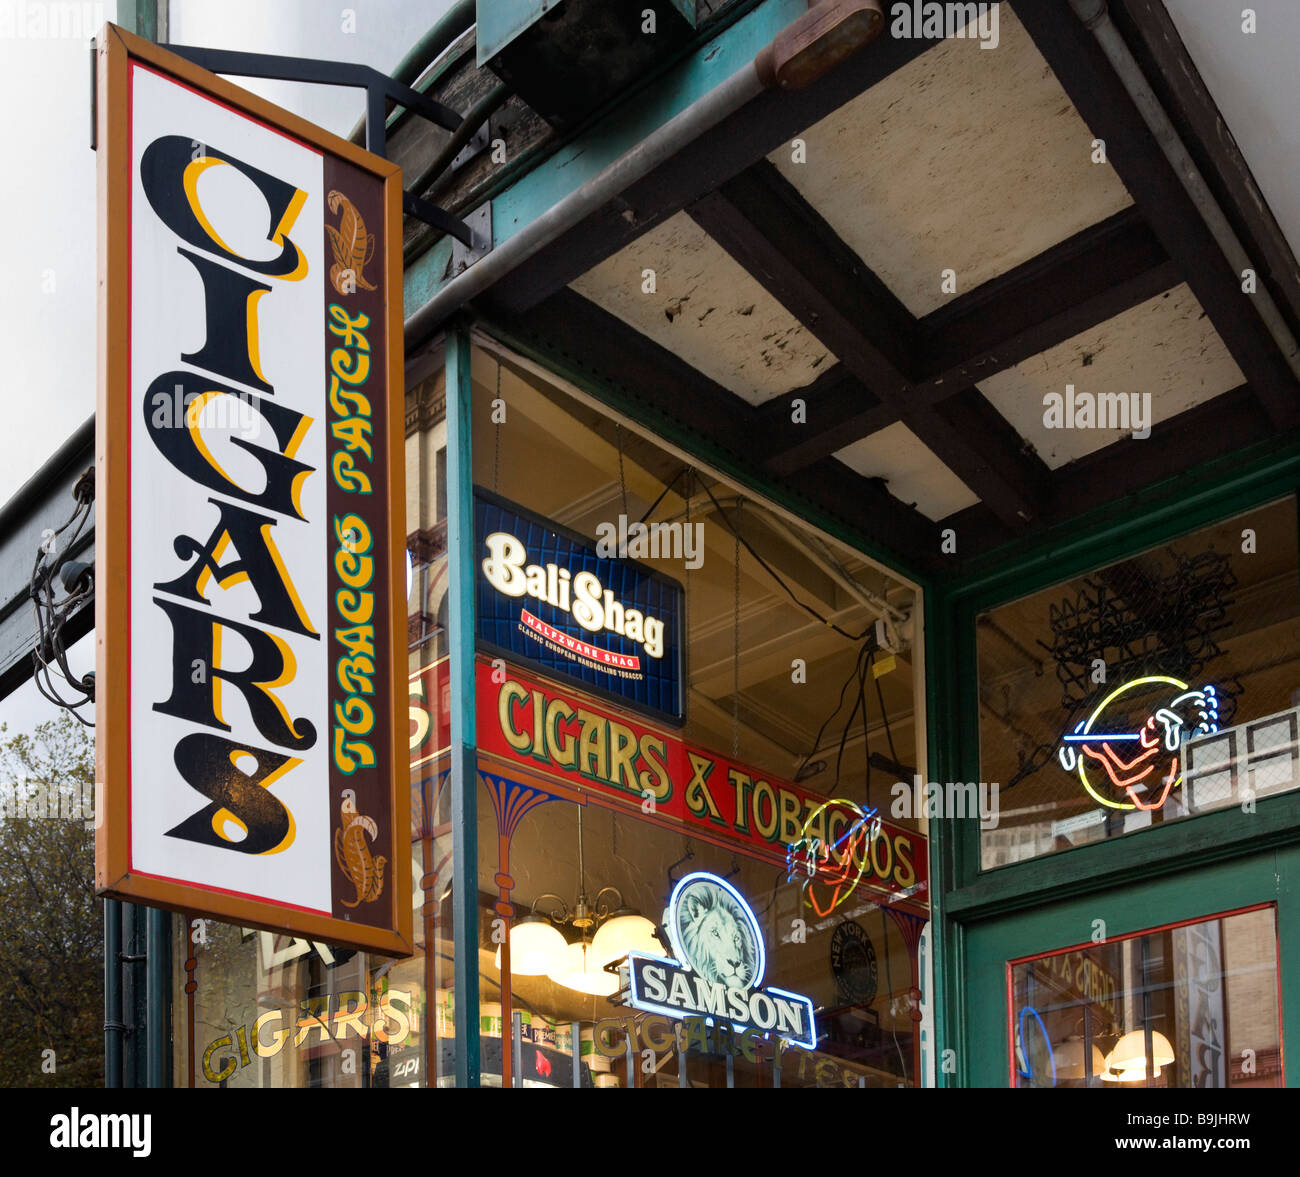 76 Best Images About Historic Downtown Storefronts On: Cigar Store In The Historic Pioneer Square District